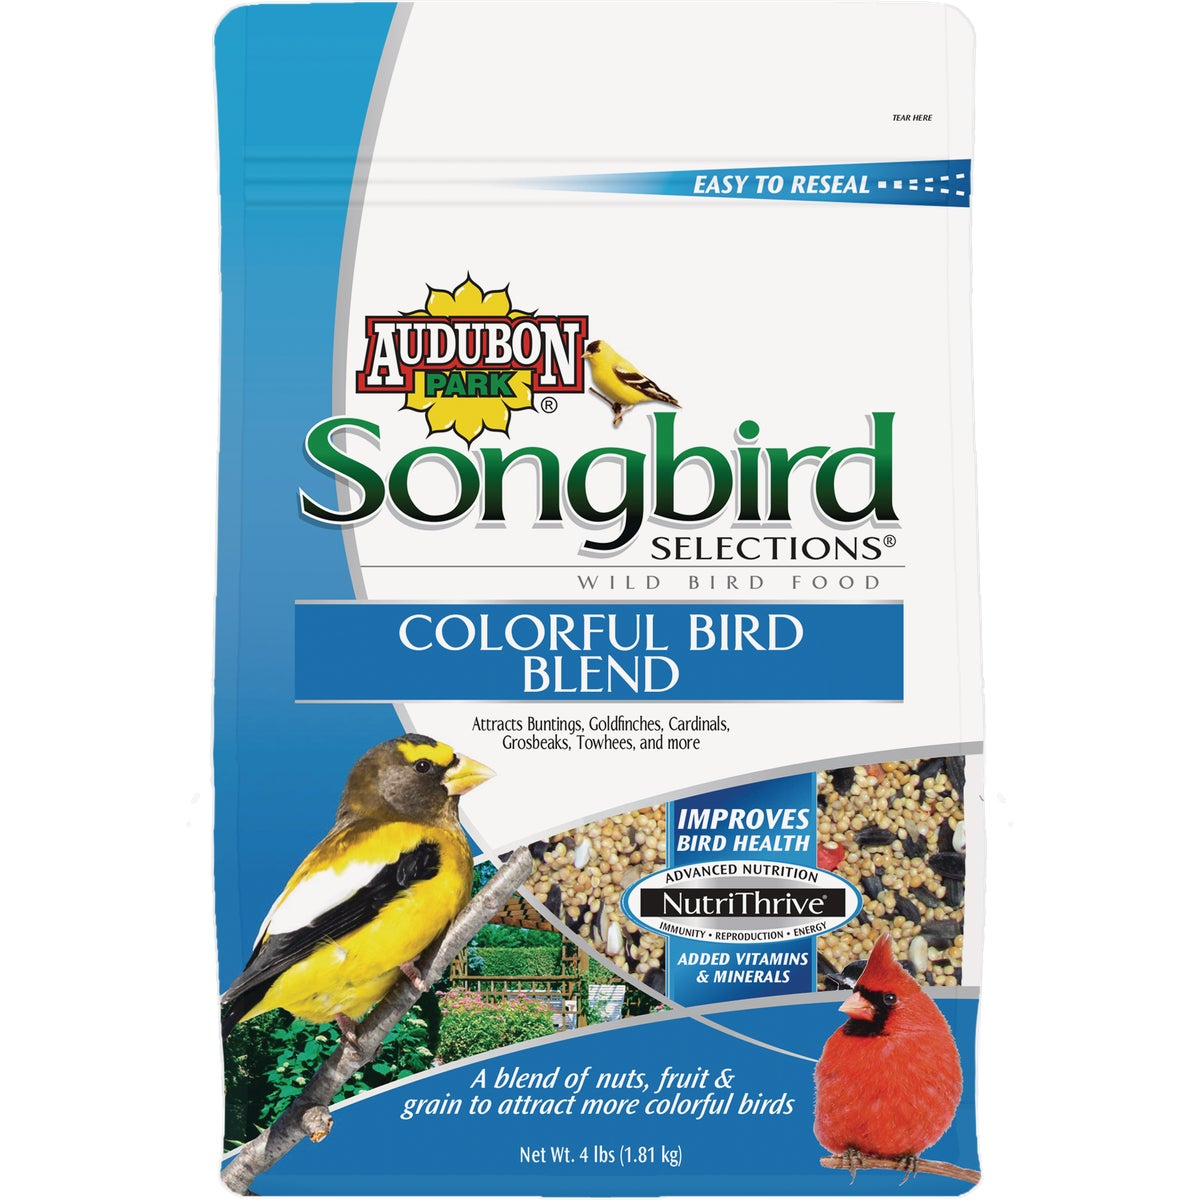 4LB COLORFUL BIRD BLEND - 1025103 by Scotts Songbird